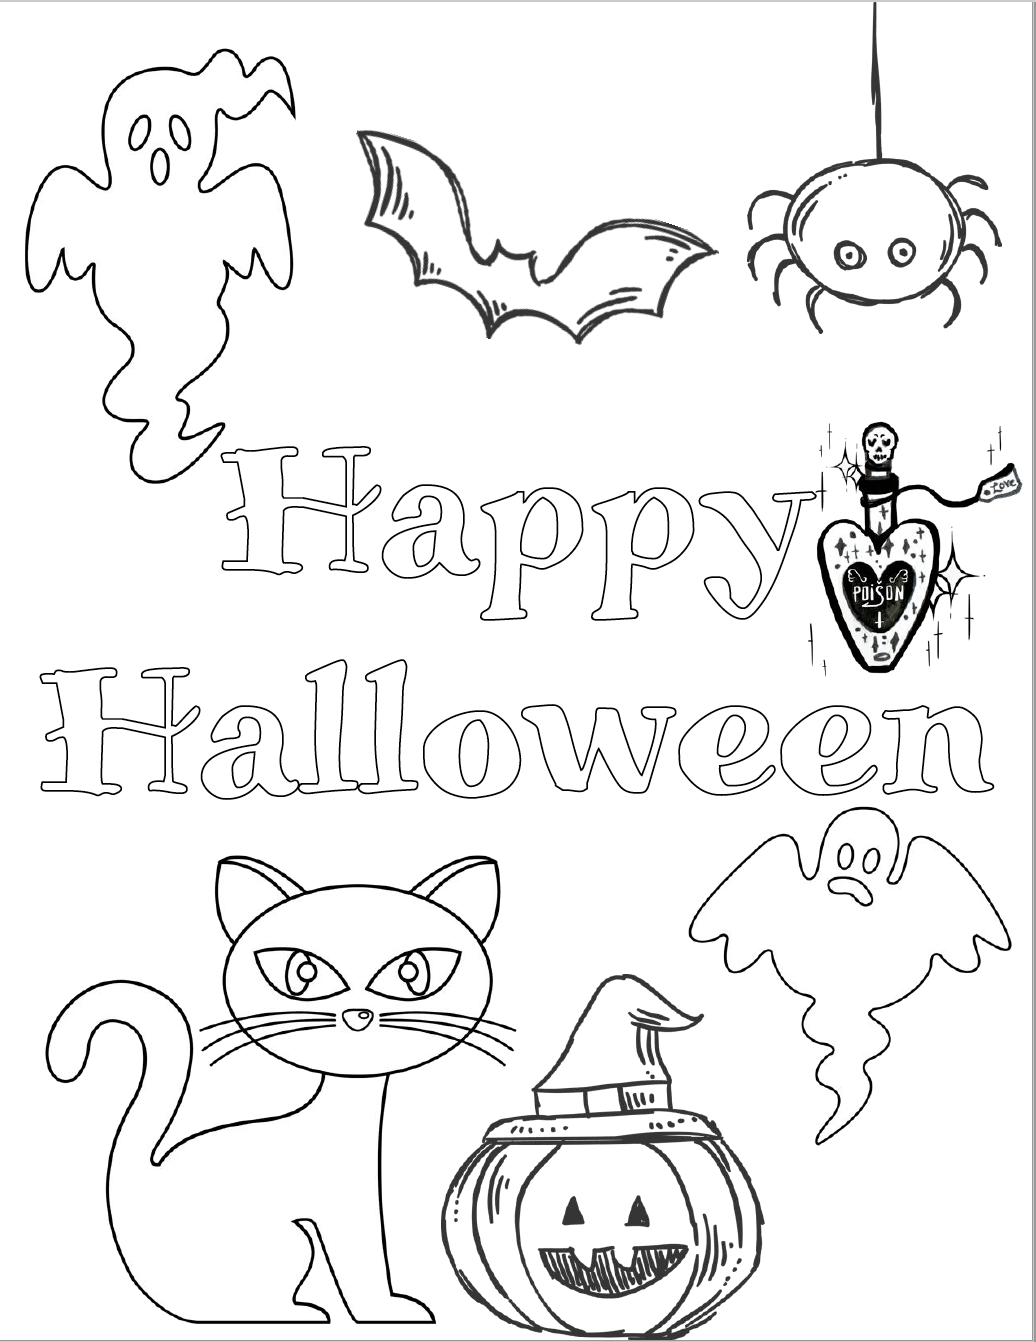 Halloween Coloring Pages Cute Halloween Coloring Pages Halloween Coloring Halloween Coloring Pages